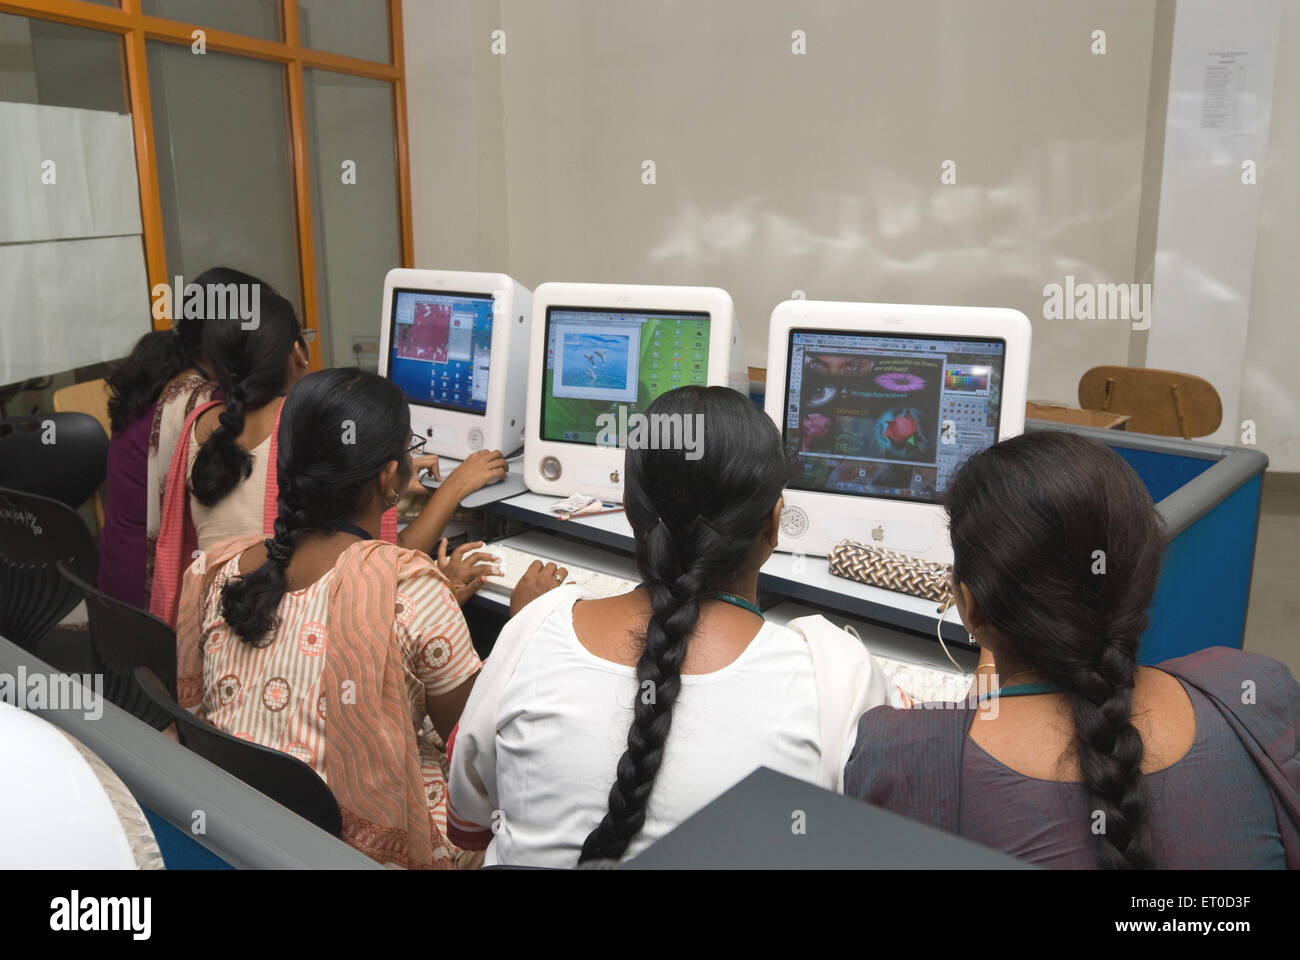 Computer lab in psg college of technology engineering institutions ; Coimbatore ; Tamil Nadu ; India - Stock Image